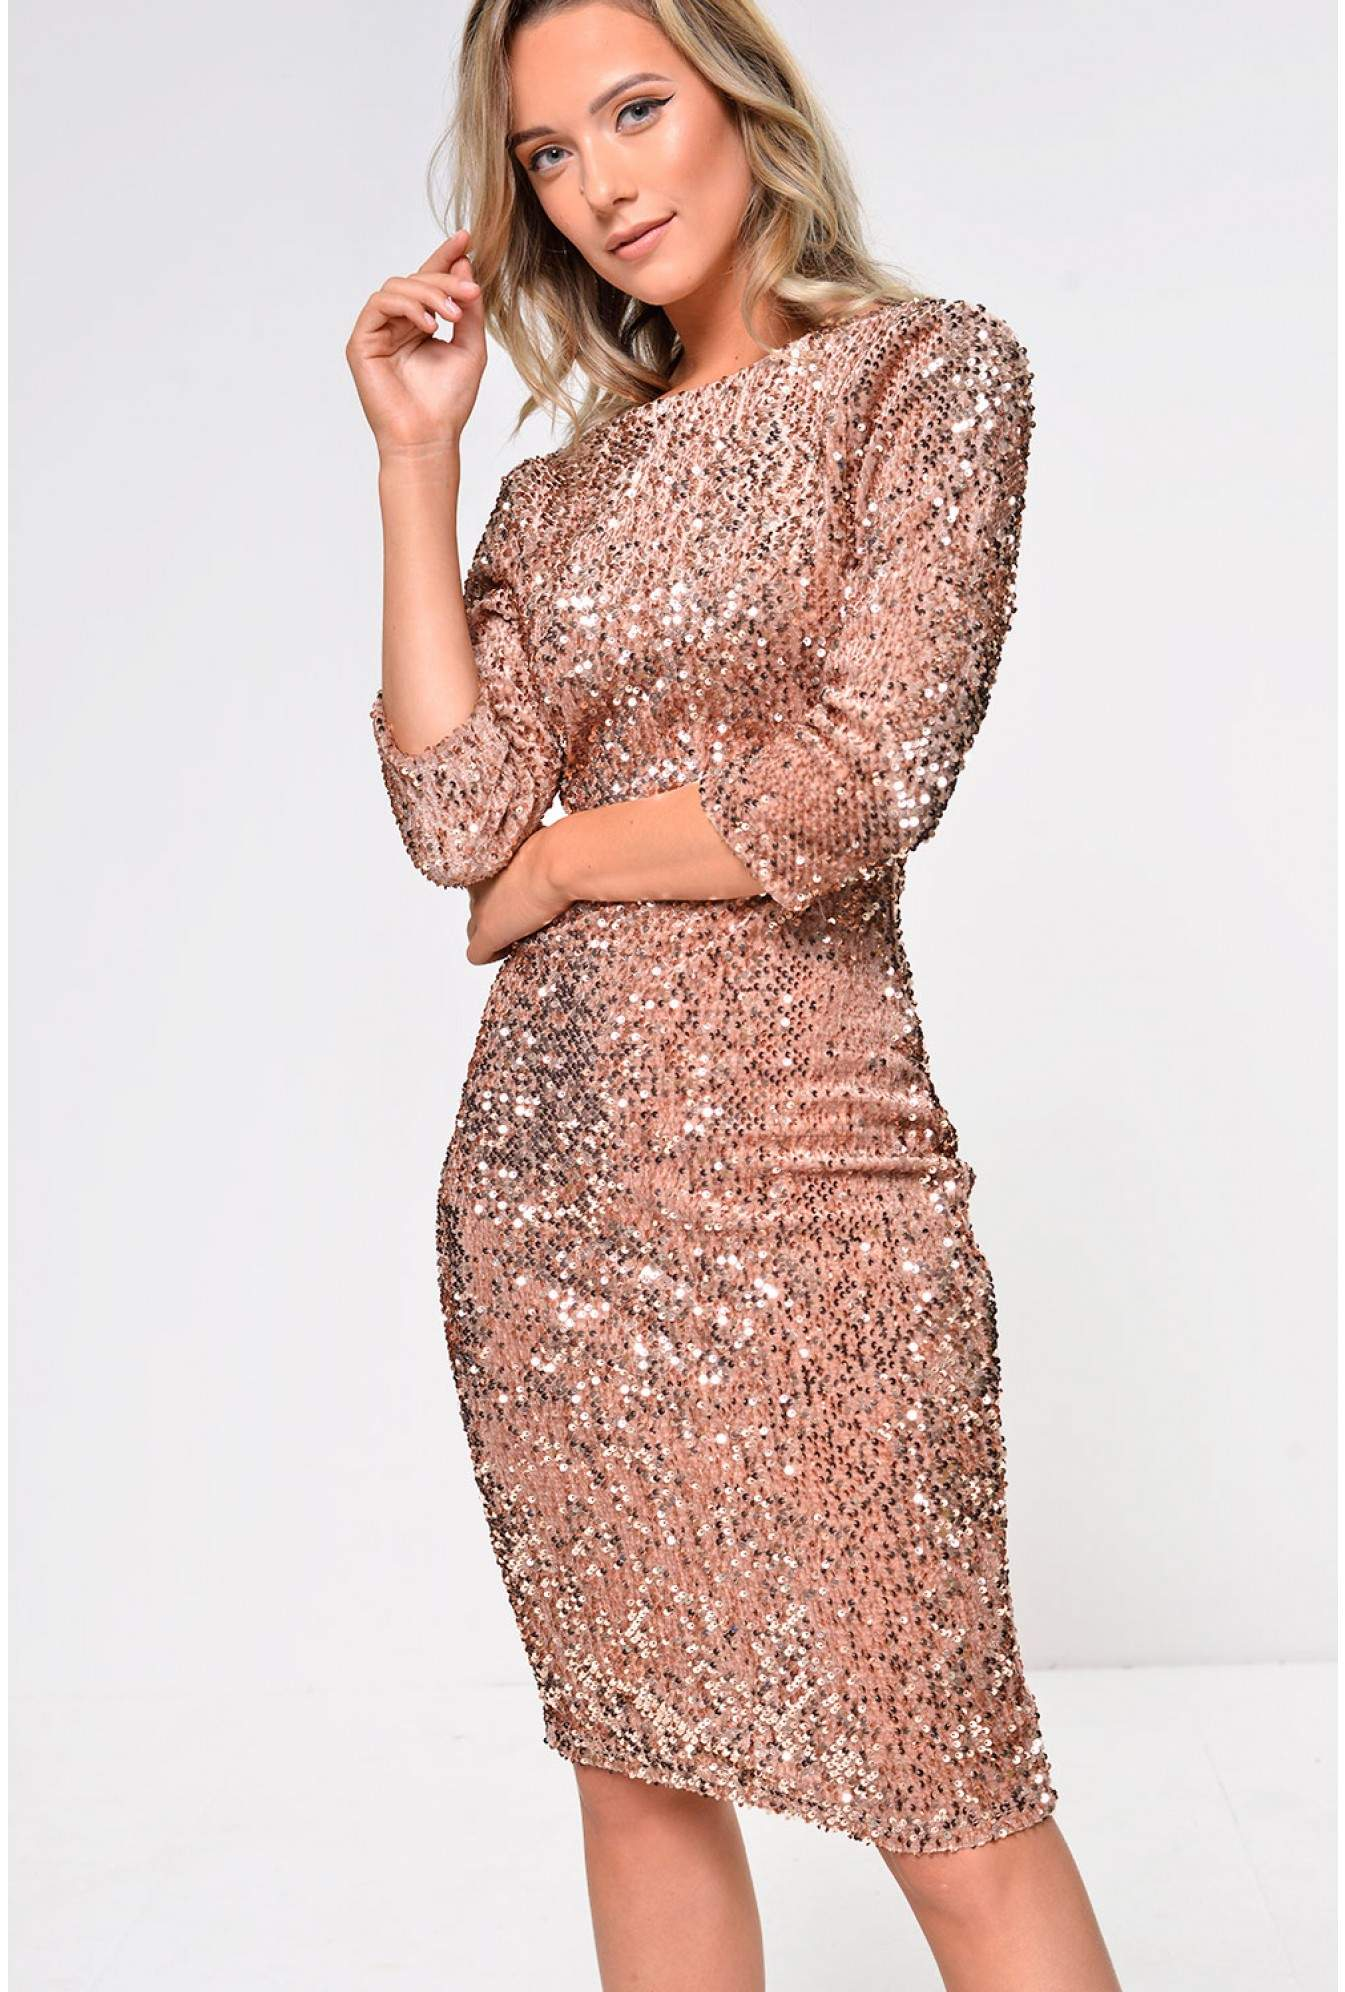 7965dbc66750 Marc Angelo Patsy Sequin Bodycon Dress with Open Back in Gold Sequin ...